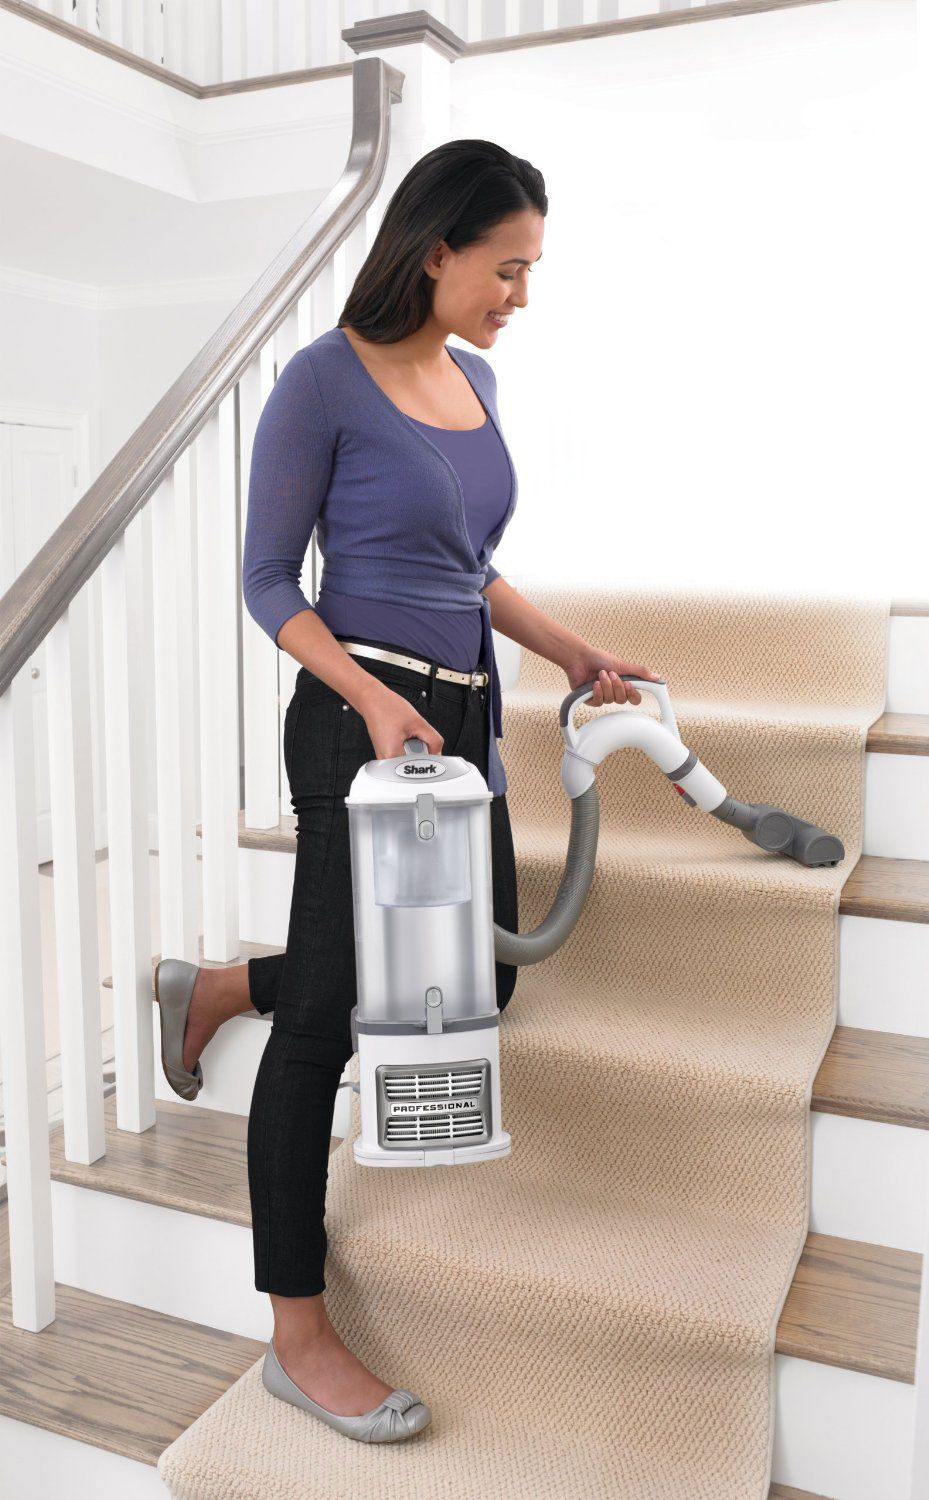 Sears Furniture Cleaning Carpet Cleaning Denver Images. Carpet For Family  Room ... #